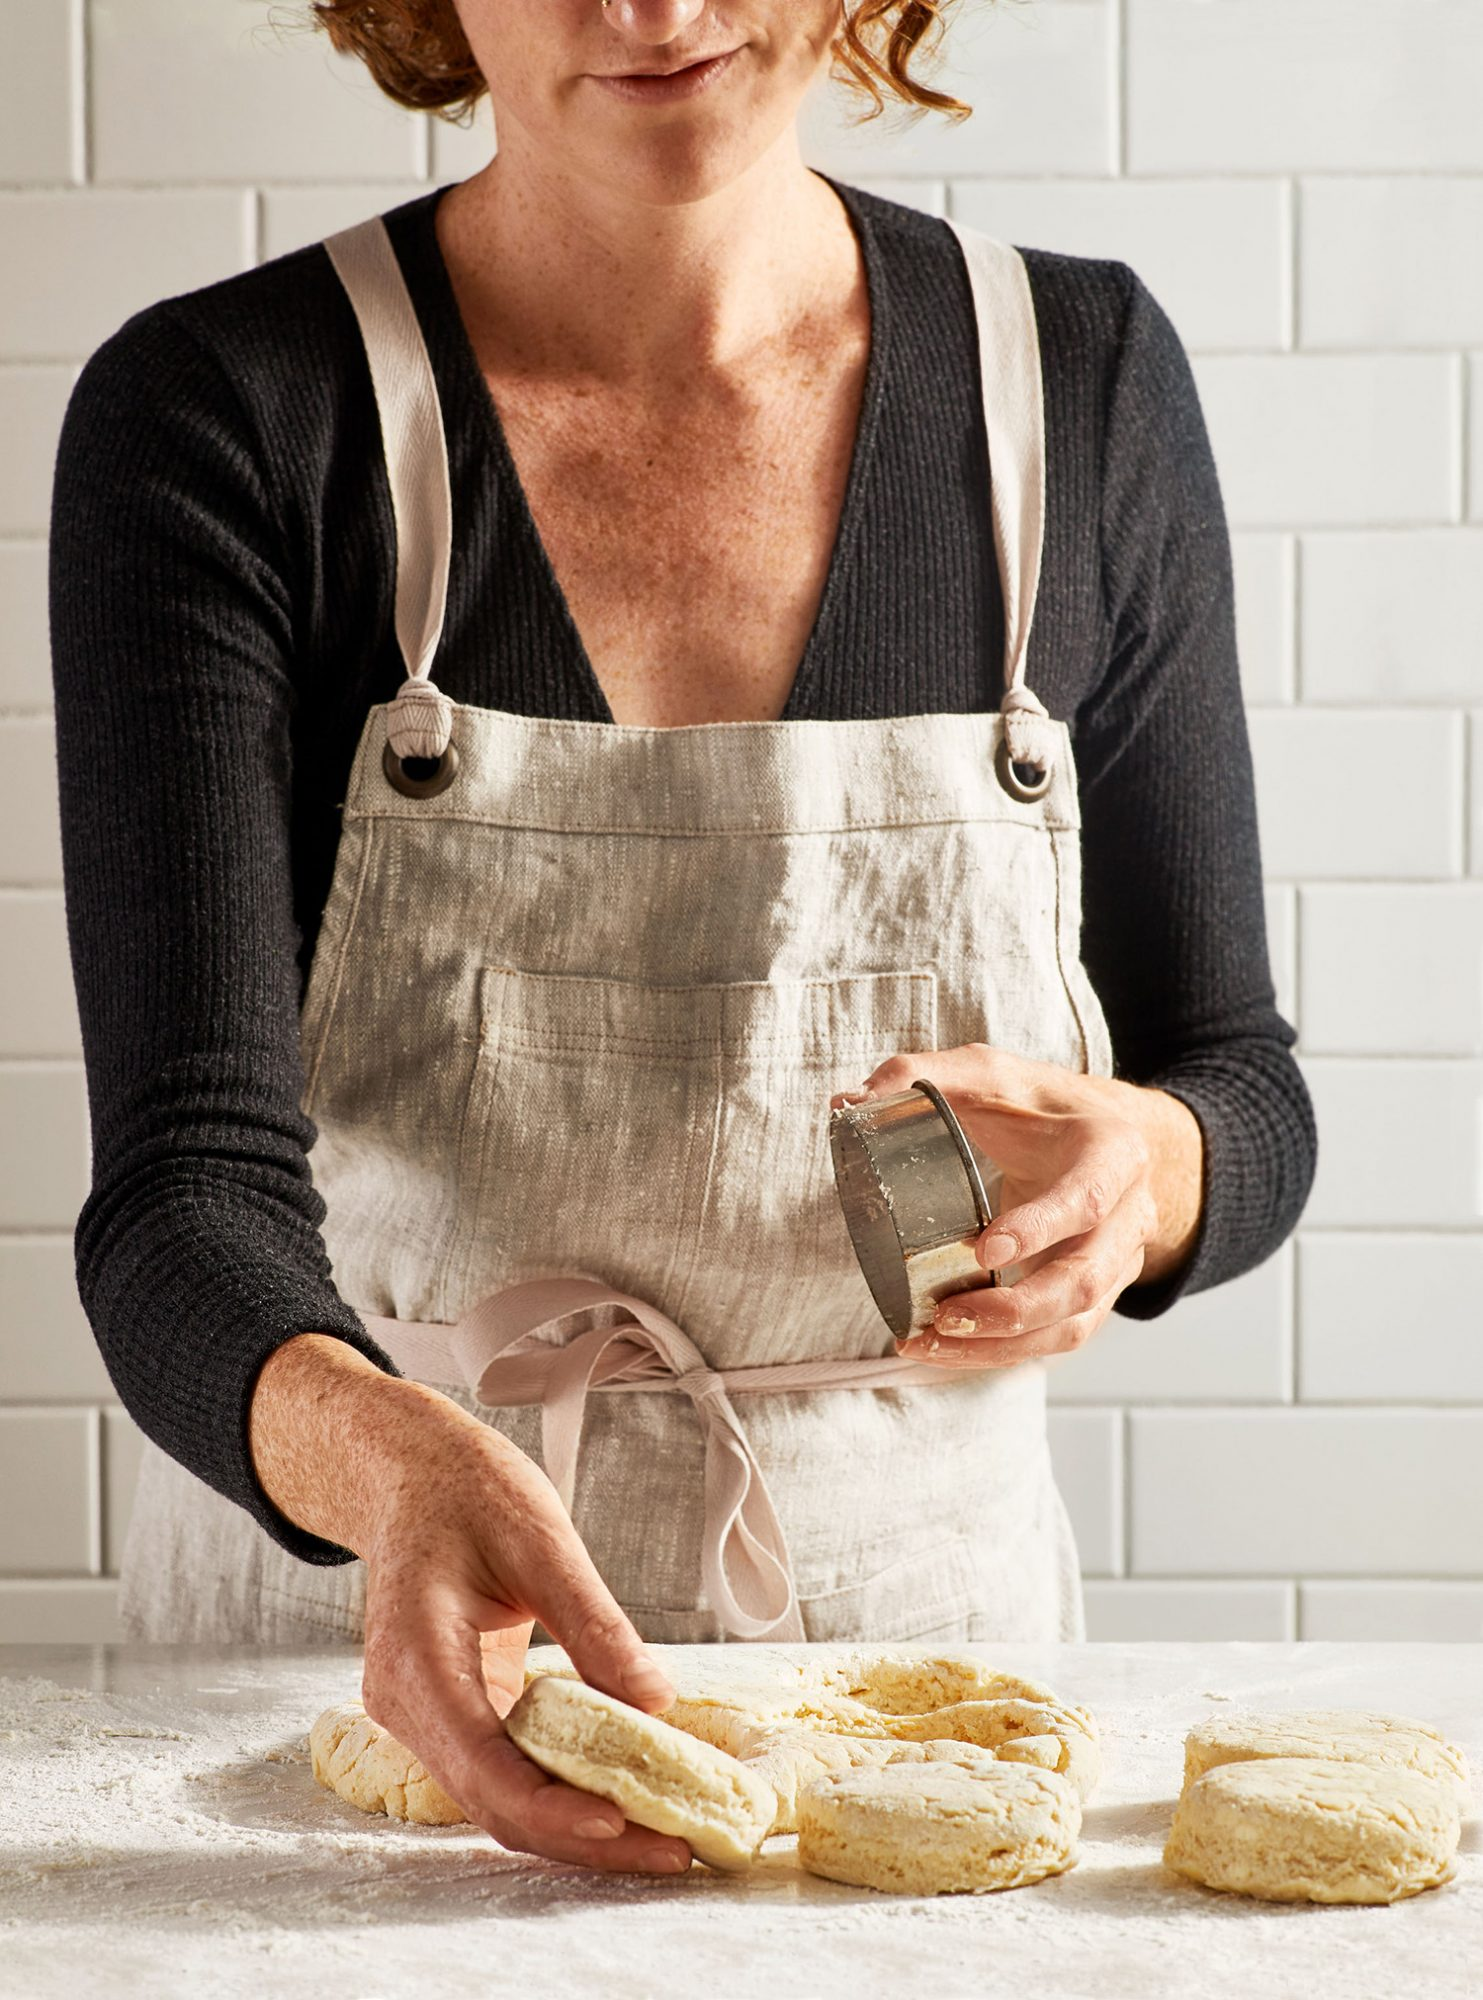 Woman Making Flaky Biscuits